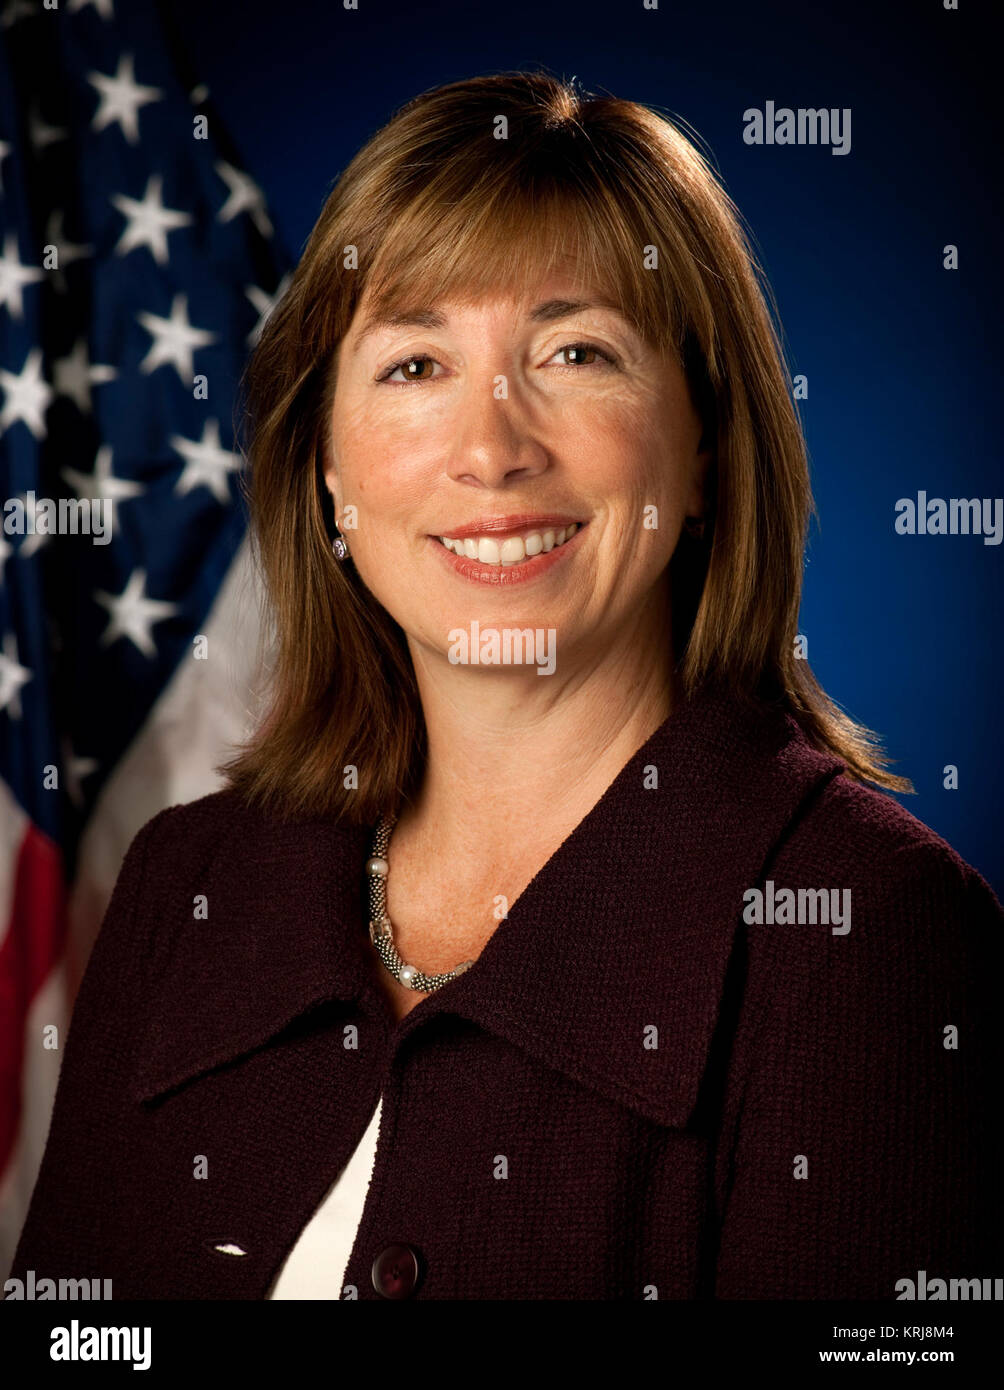 Portrait, Lori B. Garver, Deputy Administrator, National Aeronautics and Space Administration (NASA). Washington, - Stock Image